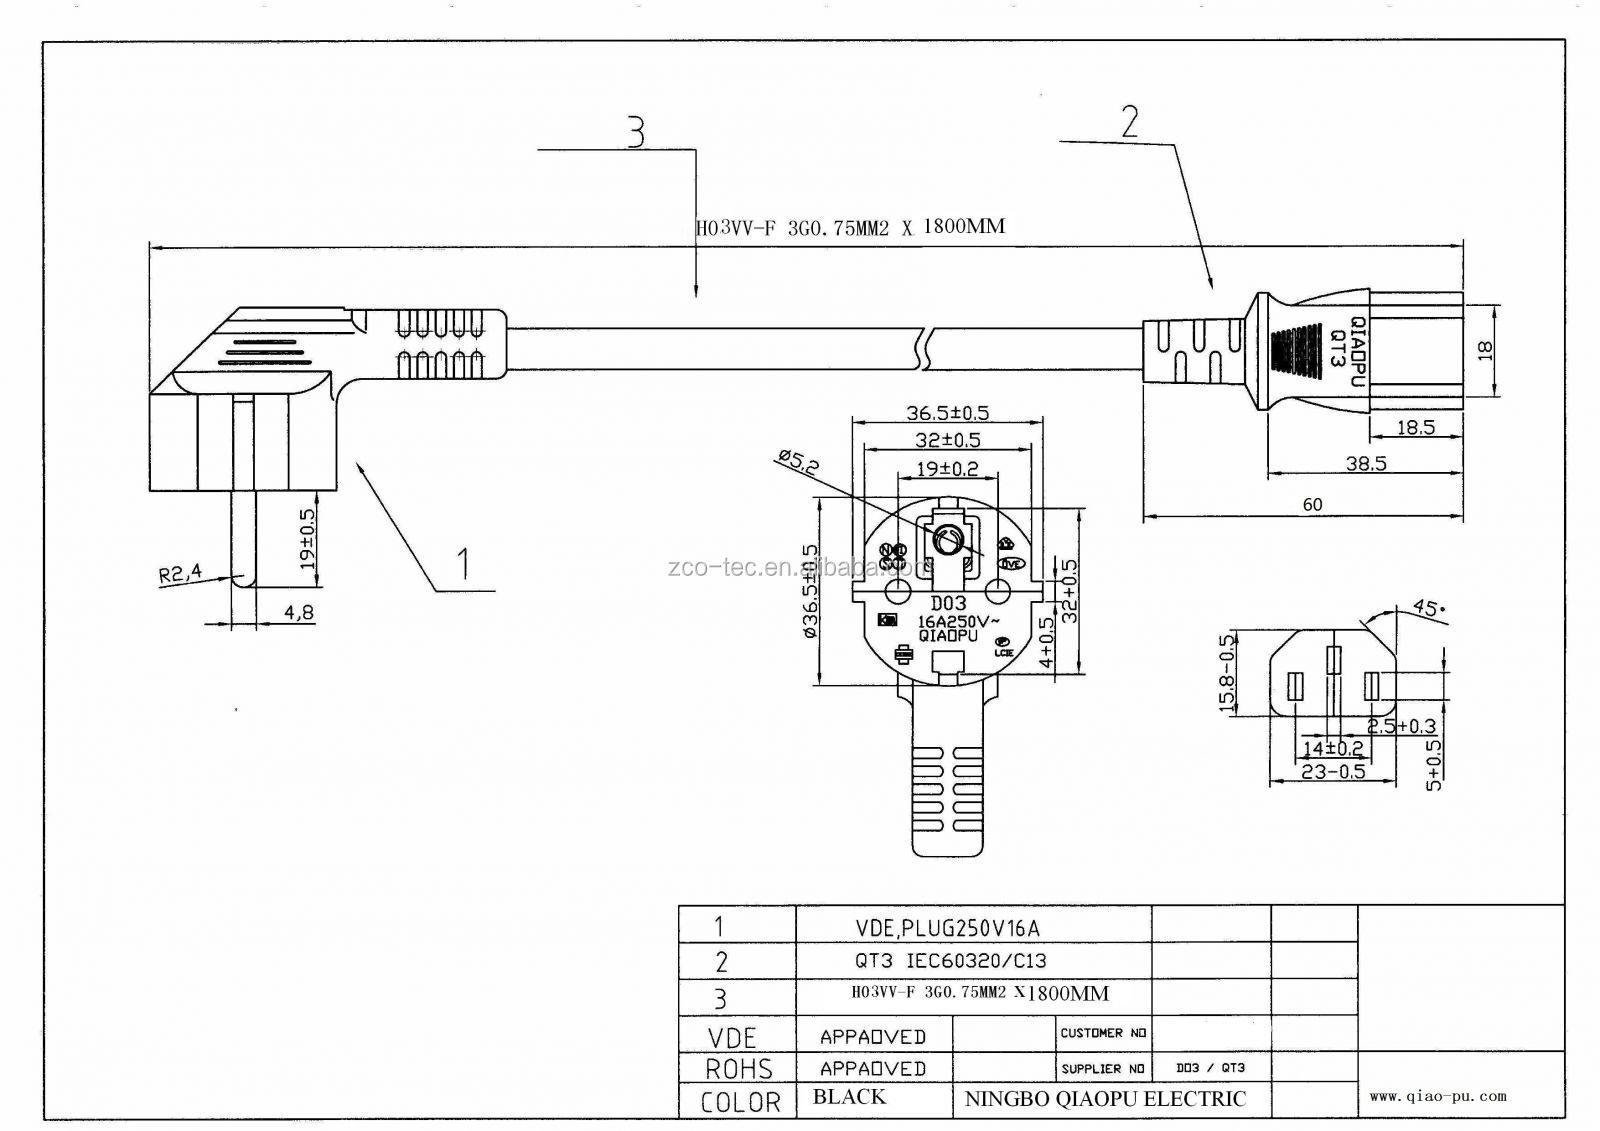 ThreePhaseTransformers likewise 85213 Wiring Basics For Residential Gas Boilers in addition Sub Panel Main Lug Load Center Single Phase 51134 as well Stumped Code 3 further 535663 Rewiring Out Country 220v Us 120v. on 208v single phase plug